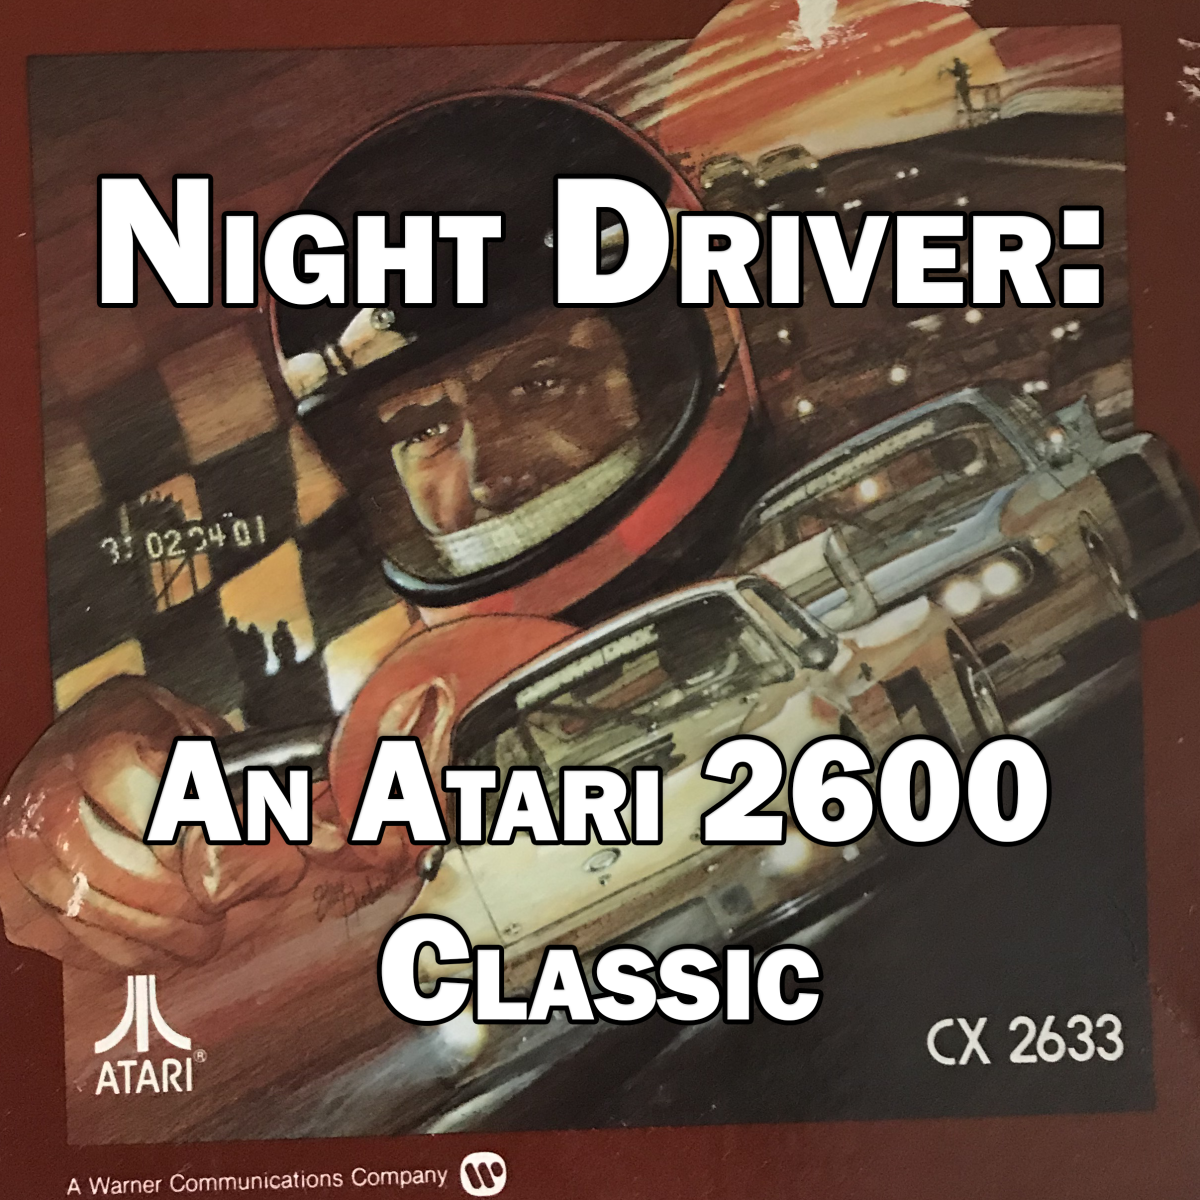 Night Driver for the Atari 2600 is still an awesome game.